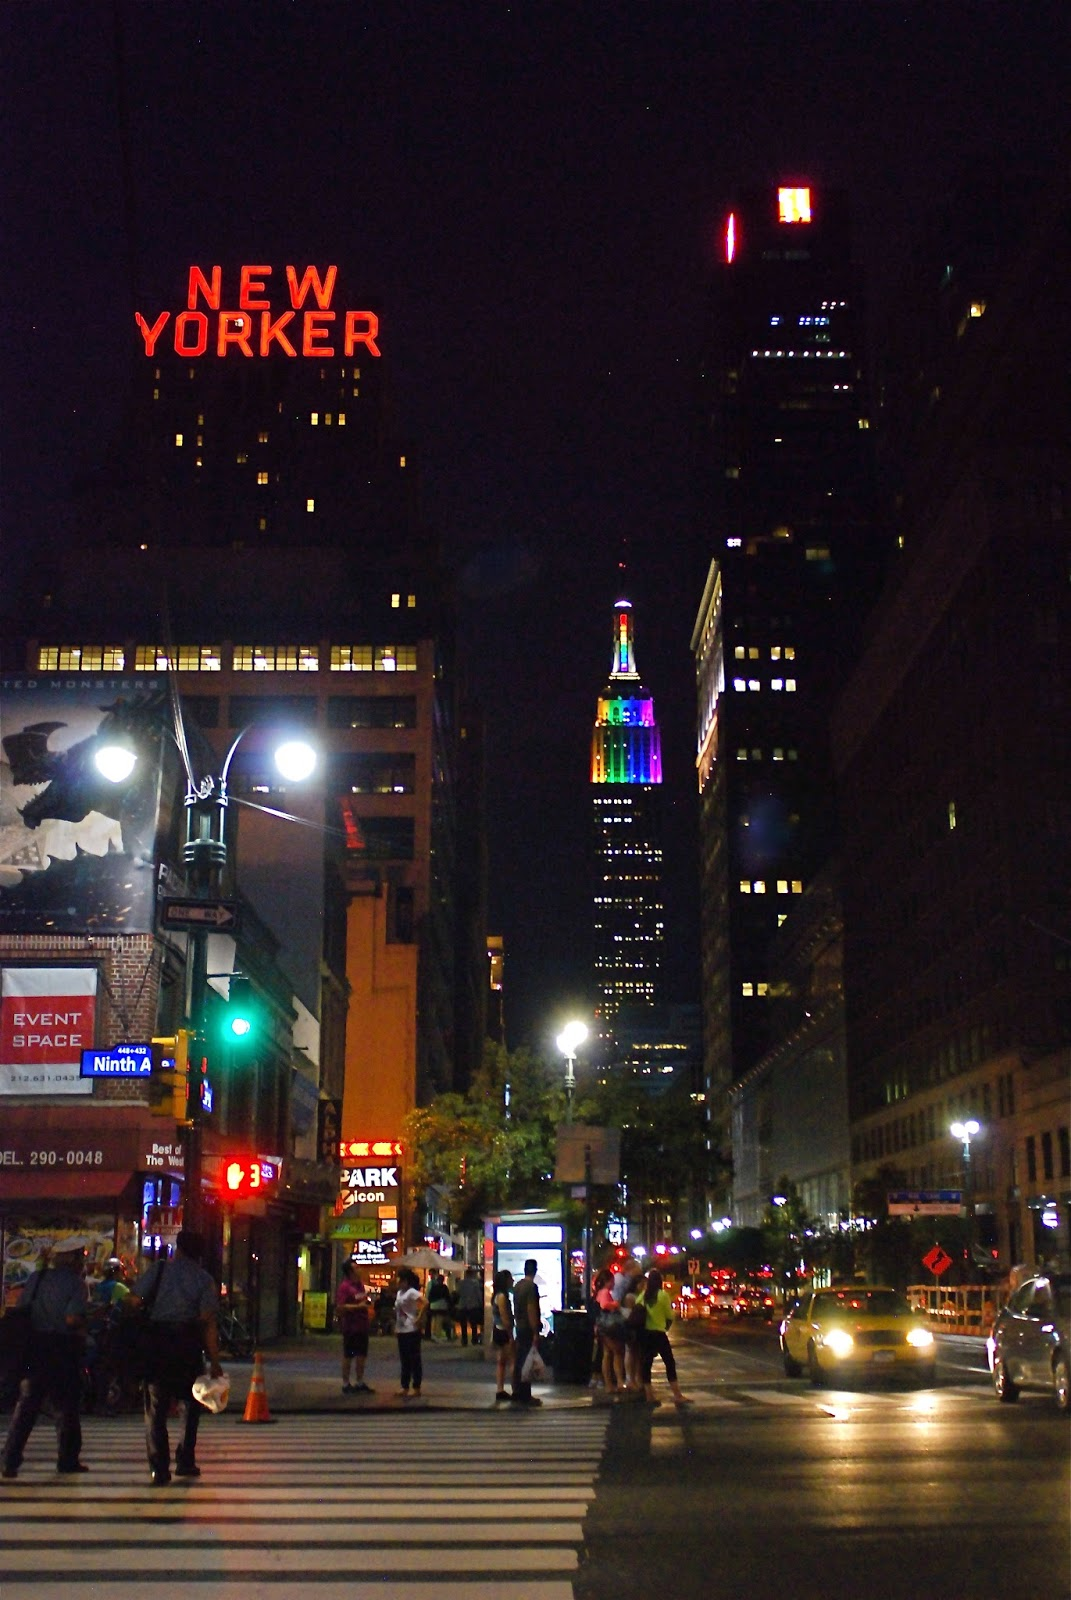 NYC ♥ NYC: The New Yorker Hotel